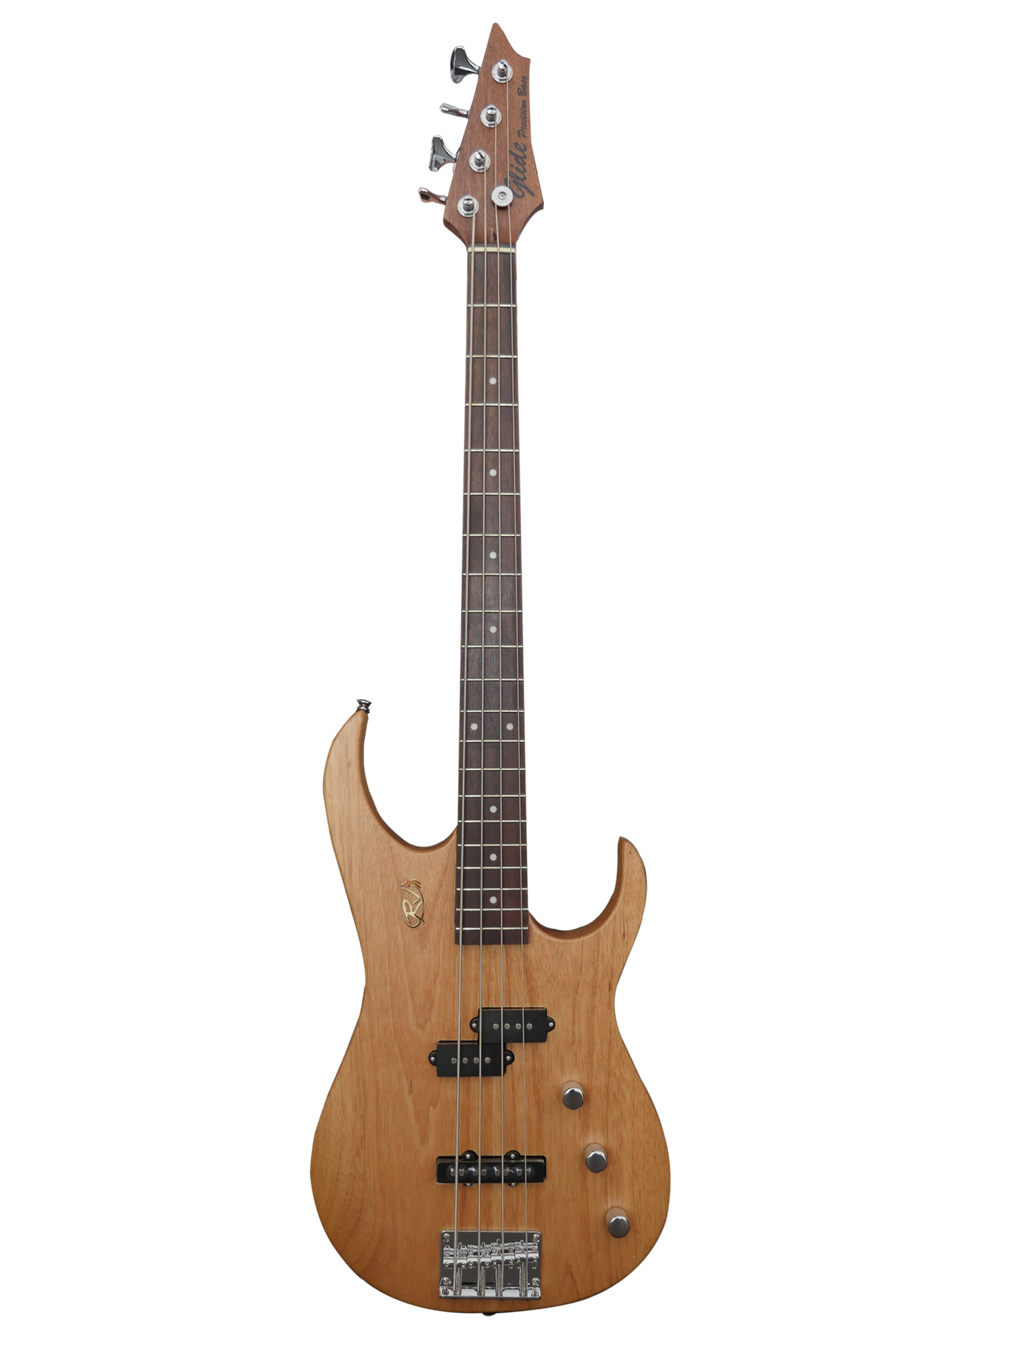 RJ Deluxe Glide (Ibanez)